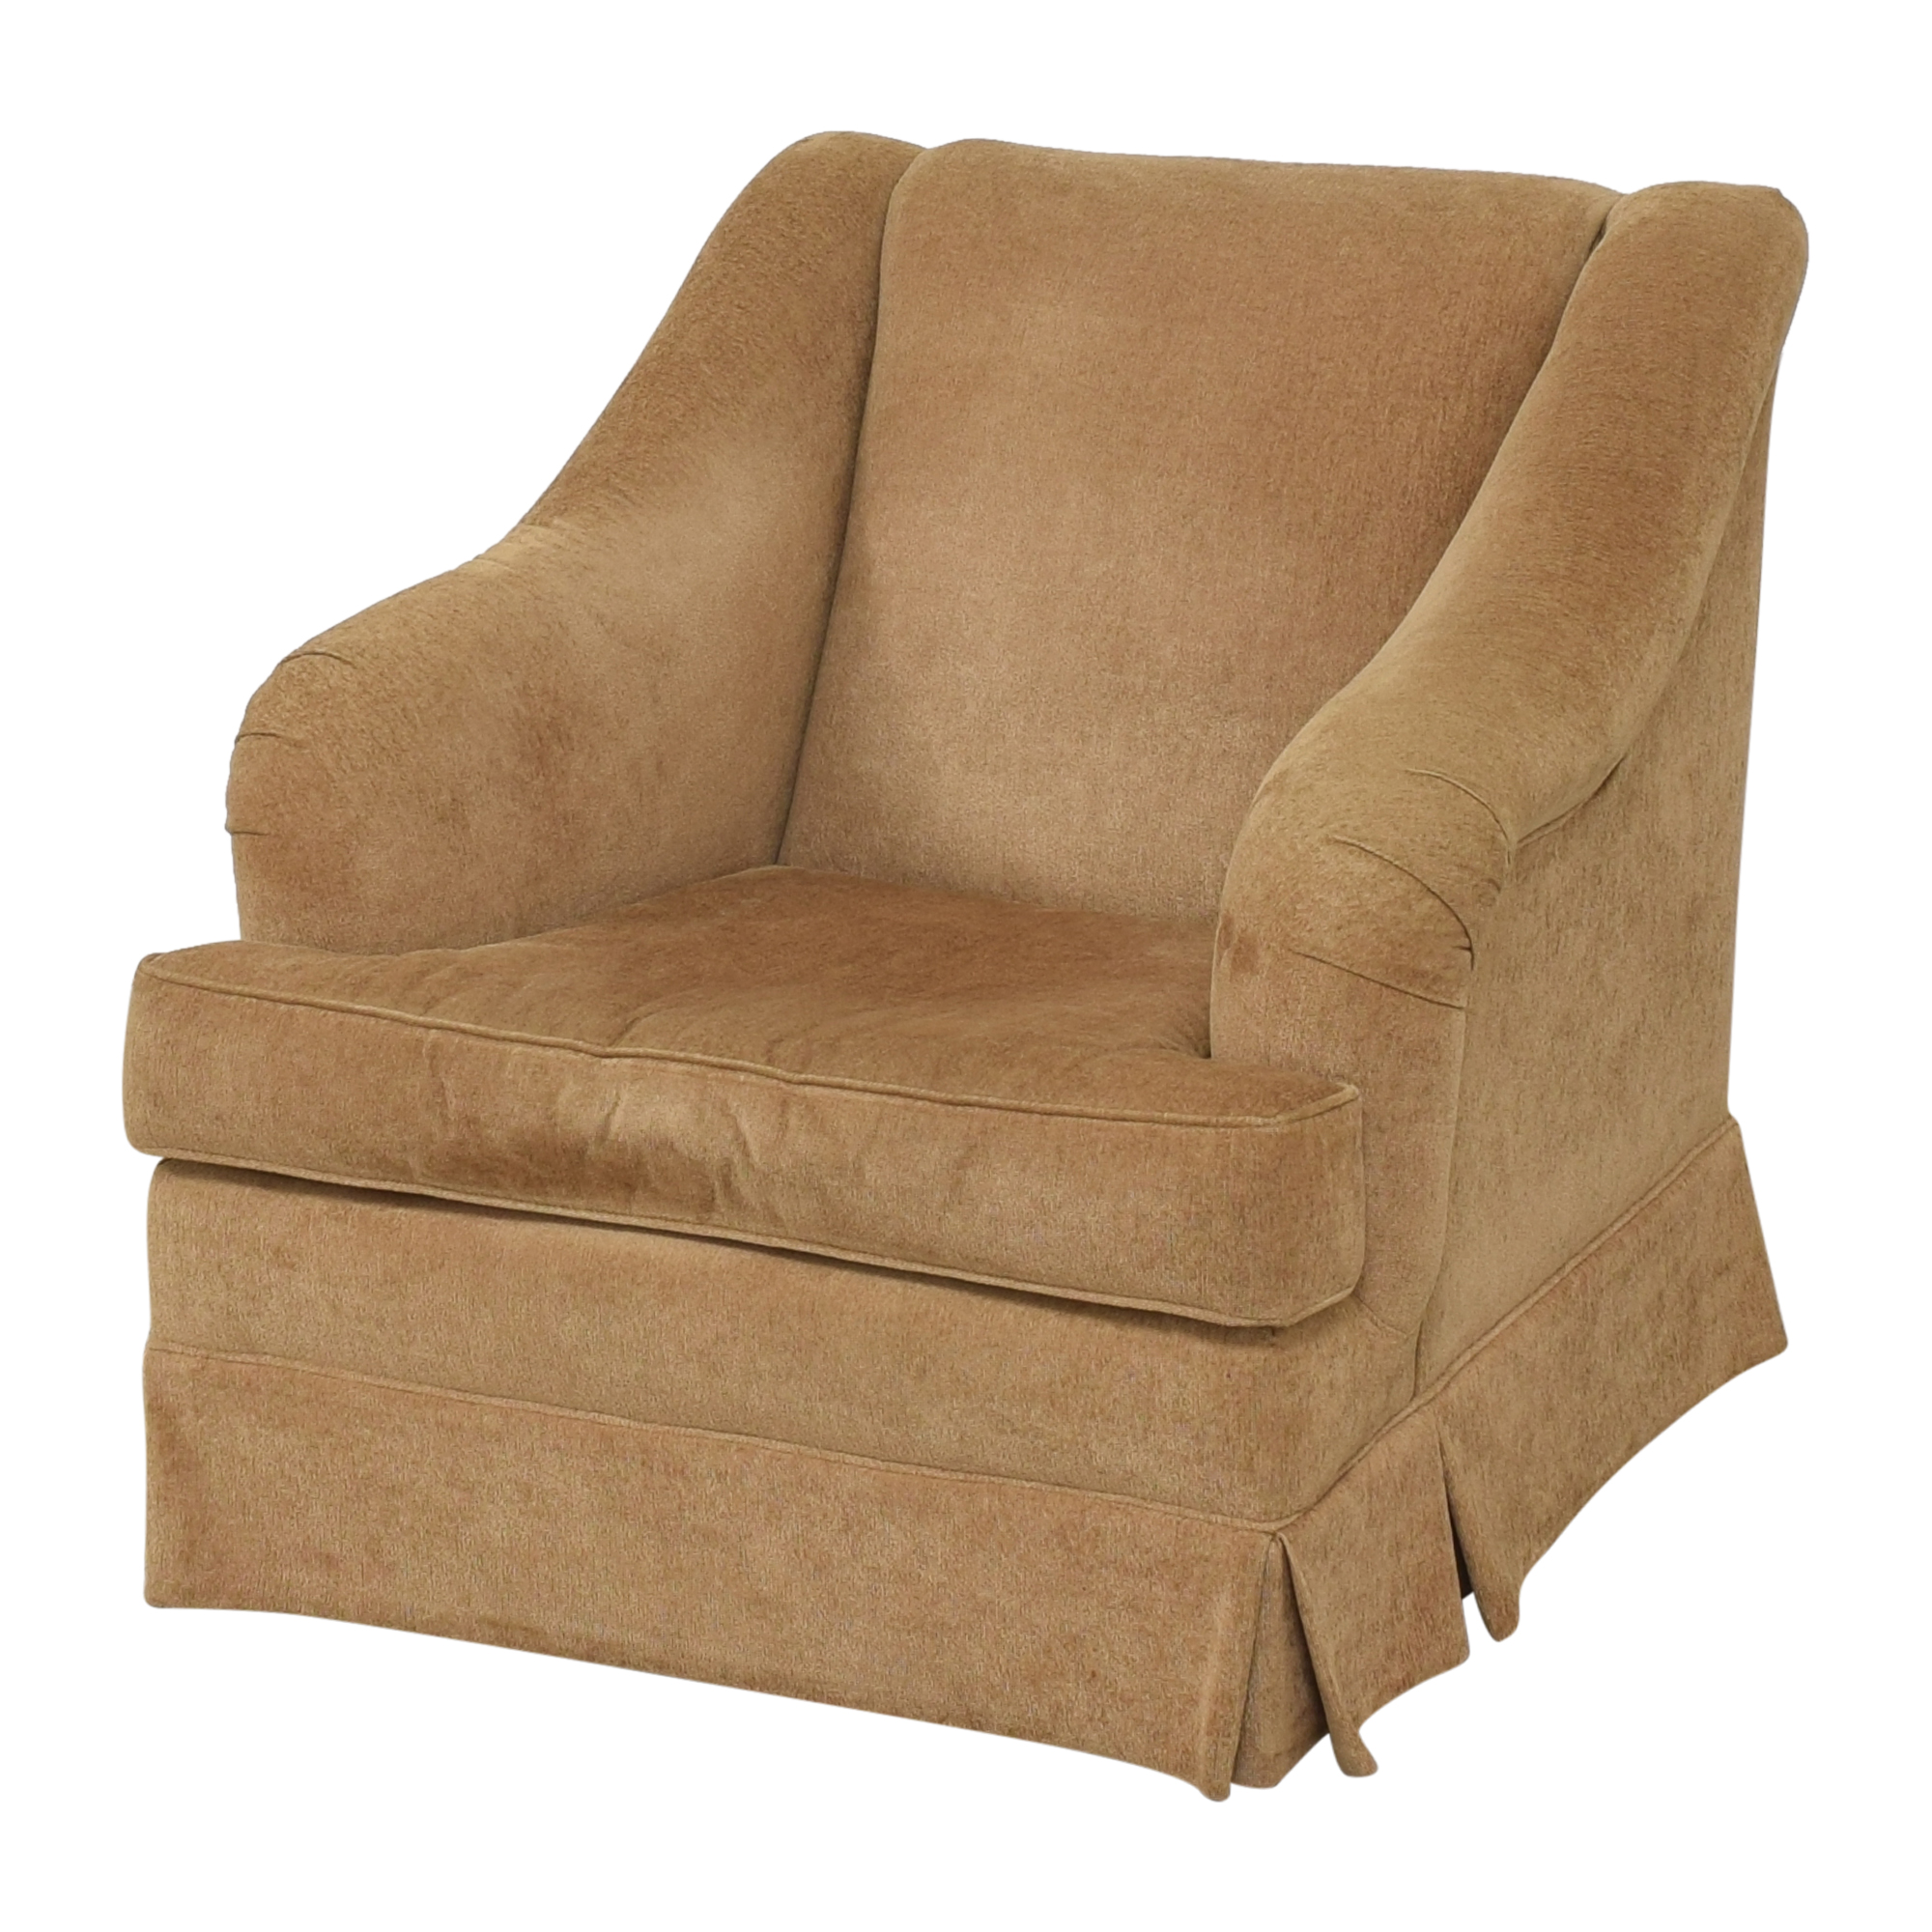 Pearson Pearson Skirted Accent Chair price